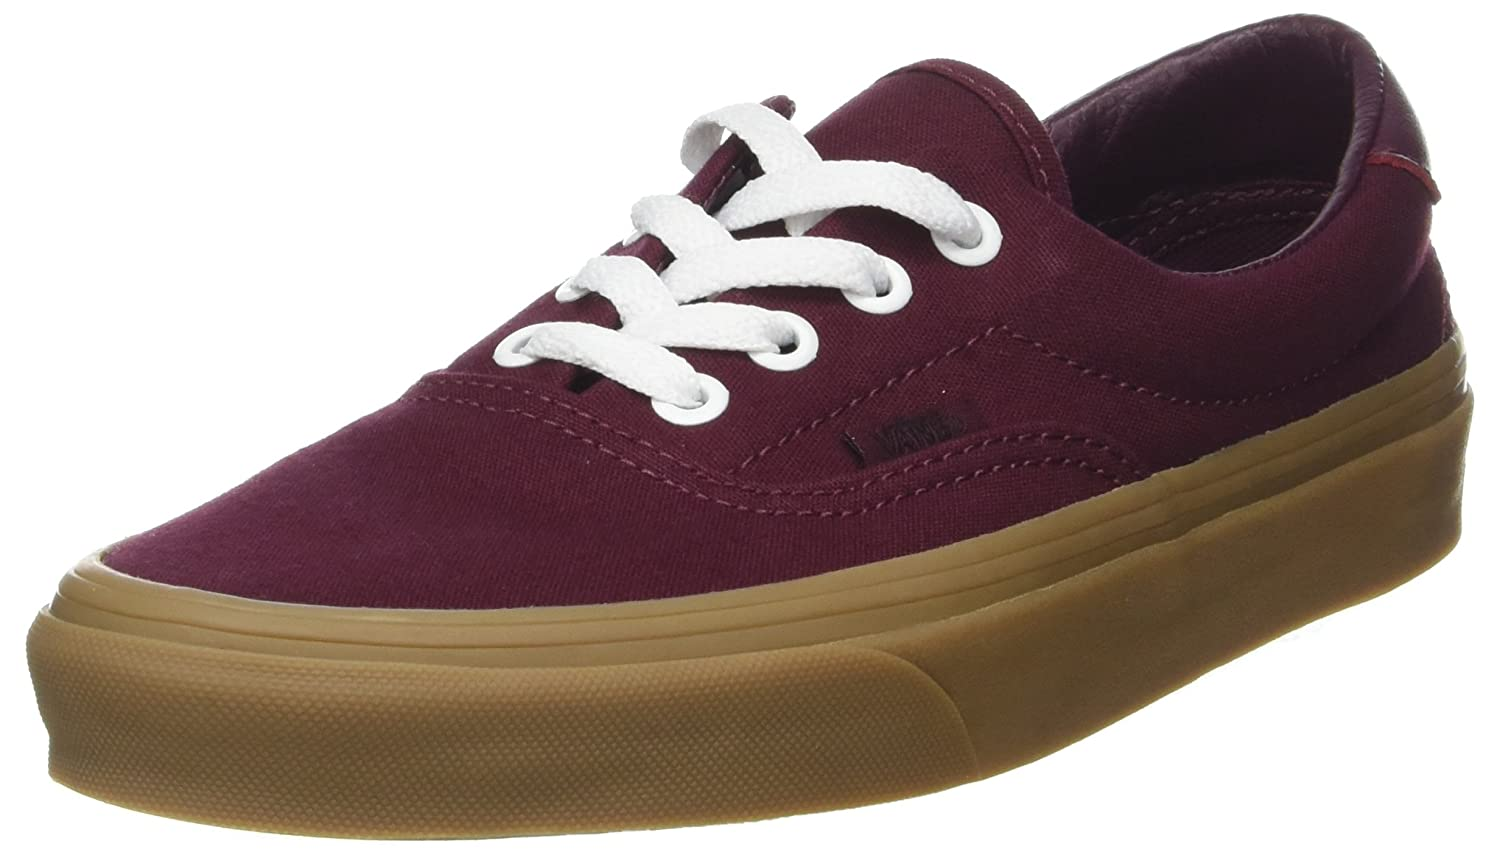 Vans Era 59 B06Y5G9WN8 Boys/Mens 10|( Canvas Gum ) Prt Ryale/Ltg